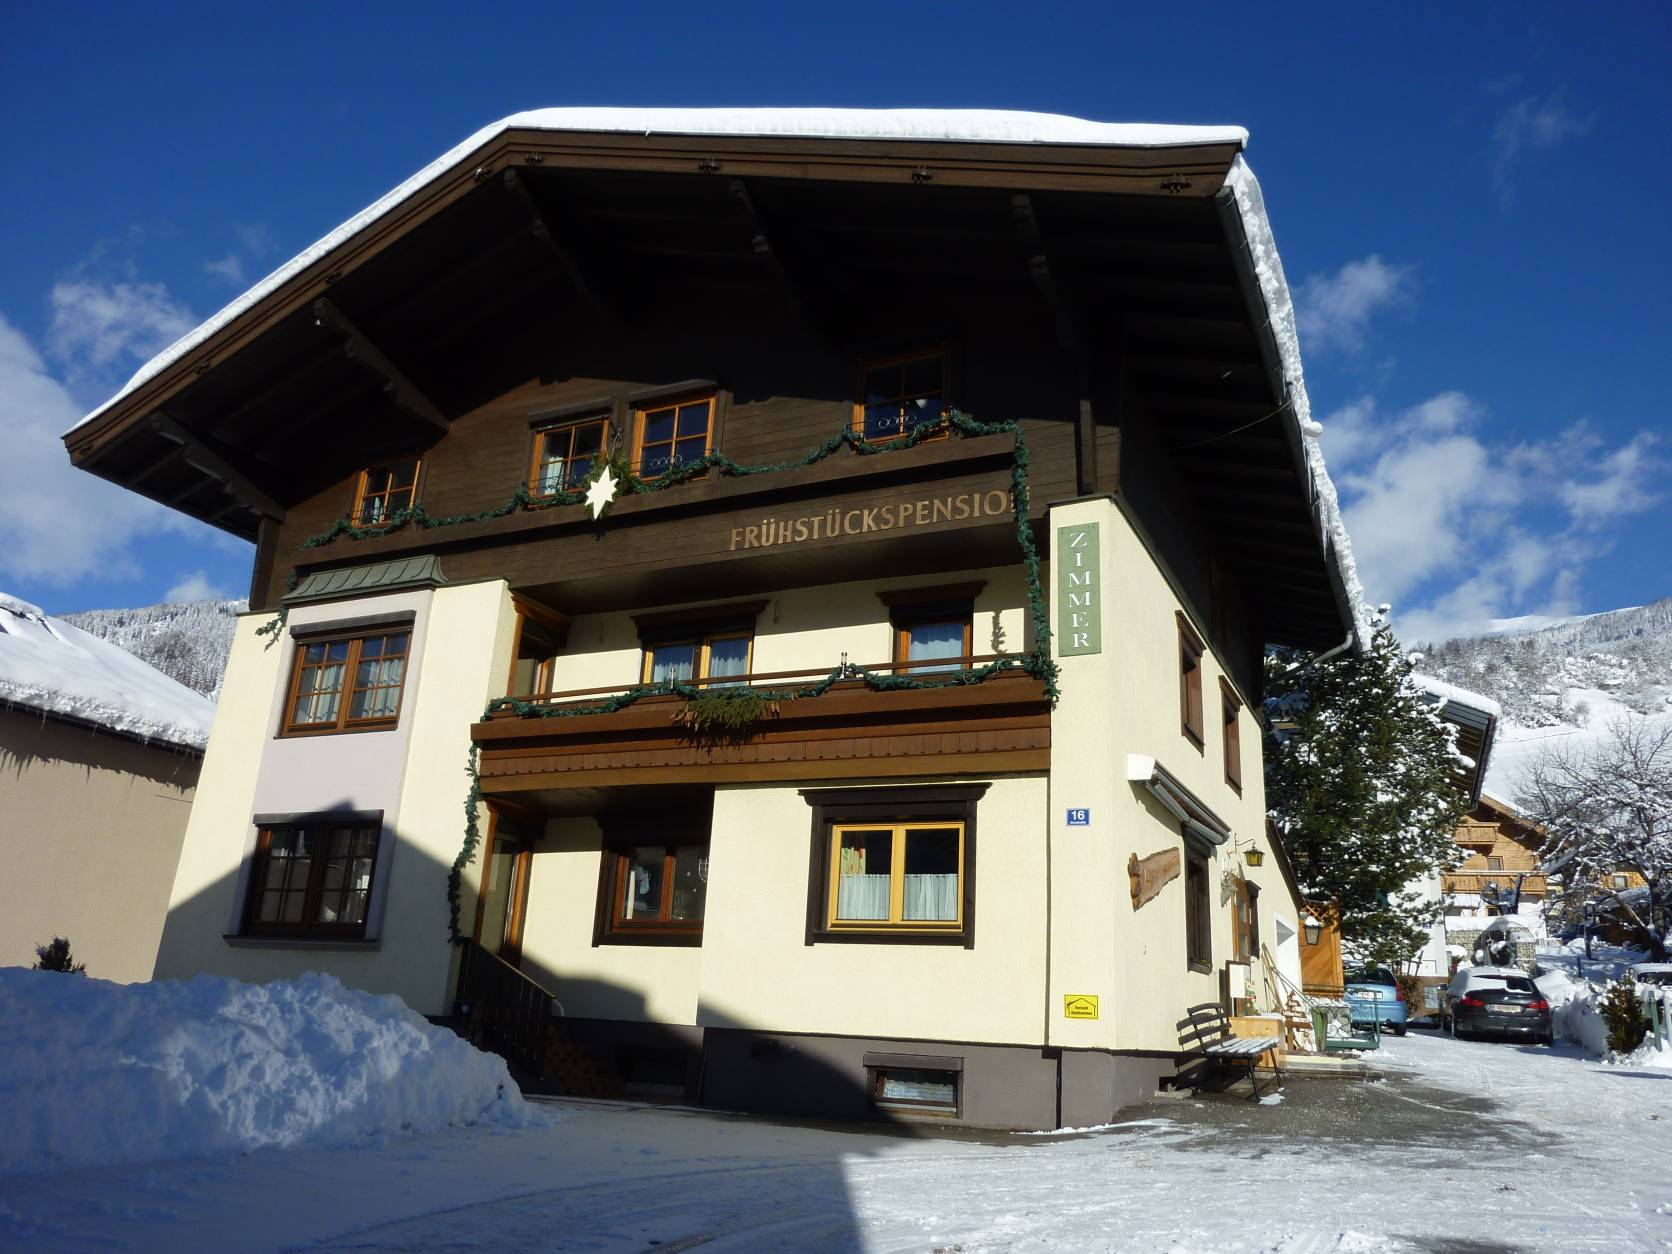 Pension zu Hause in the Winter